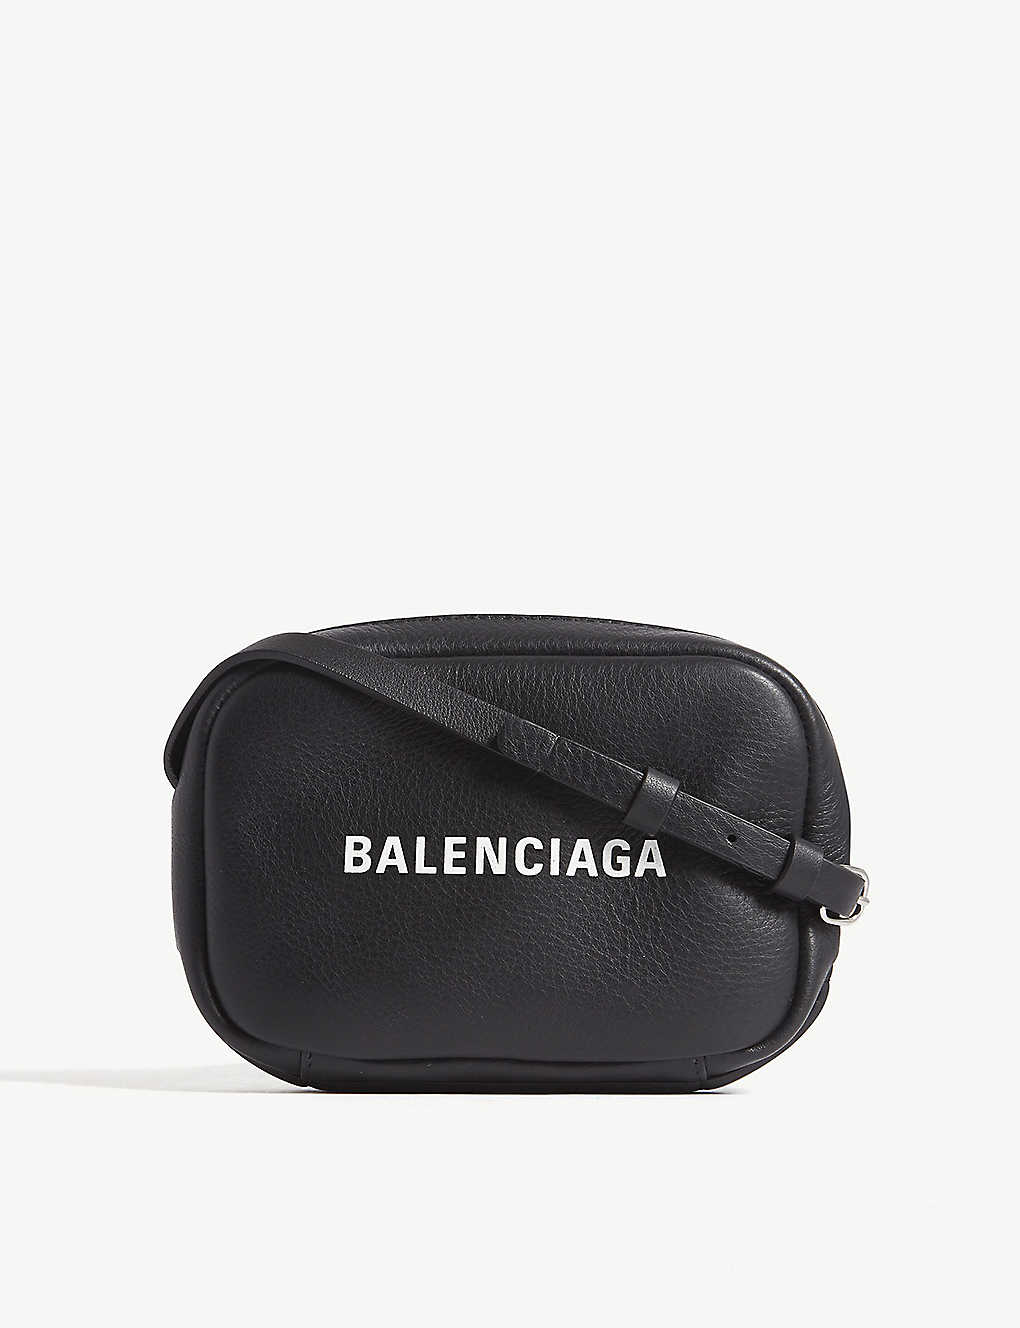 05e3f9c5e1cc BALENCIAGA - Logo-print leather camera cross-body bag